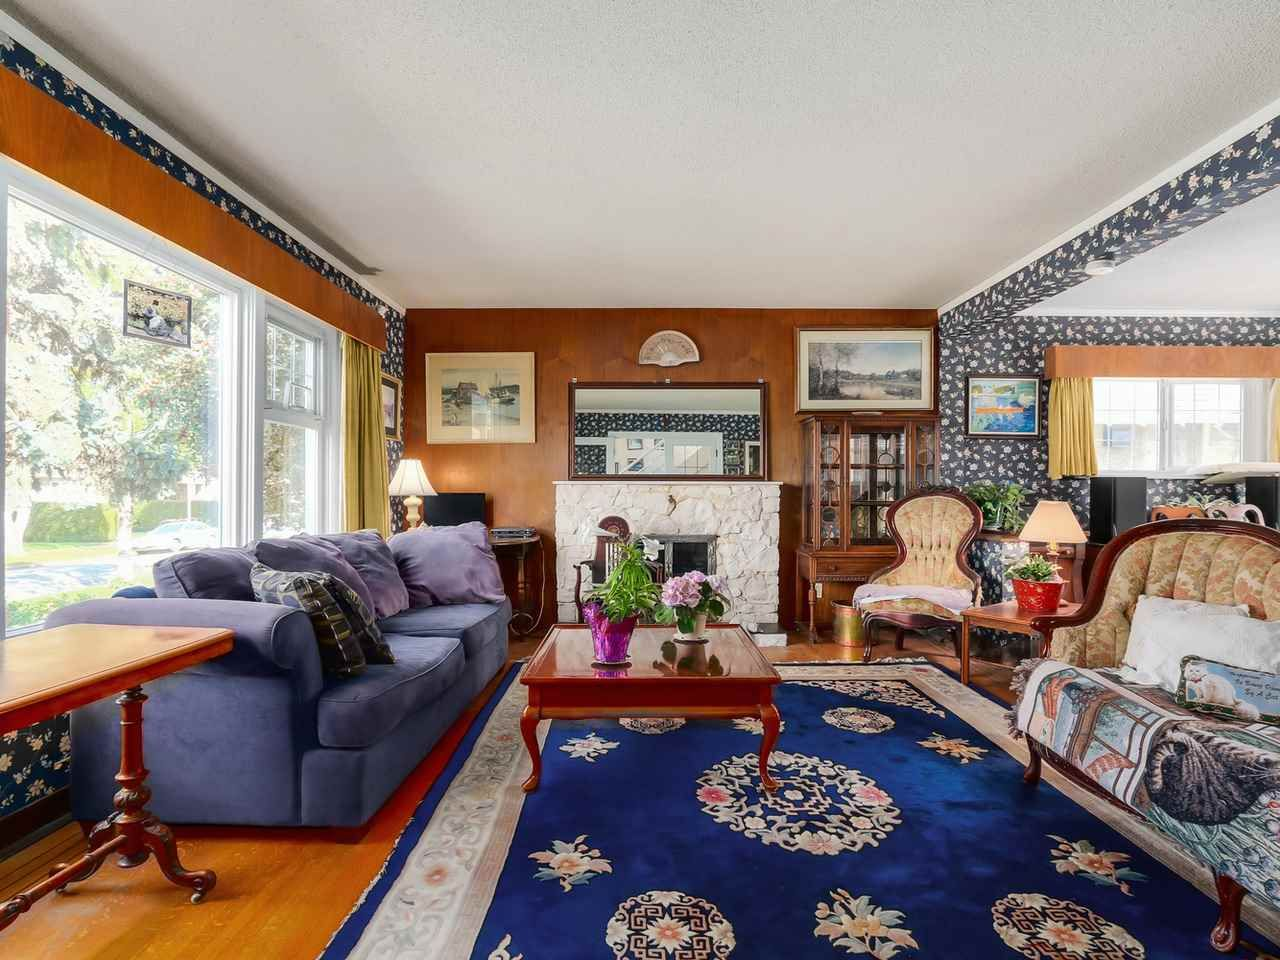 Photo 6: Photos: 2796 W 21ST Avenue in Vancouver: Arbutus House for sale (Vancouver West)  : MLS®# R2078868